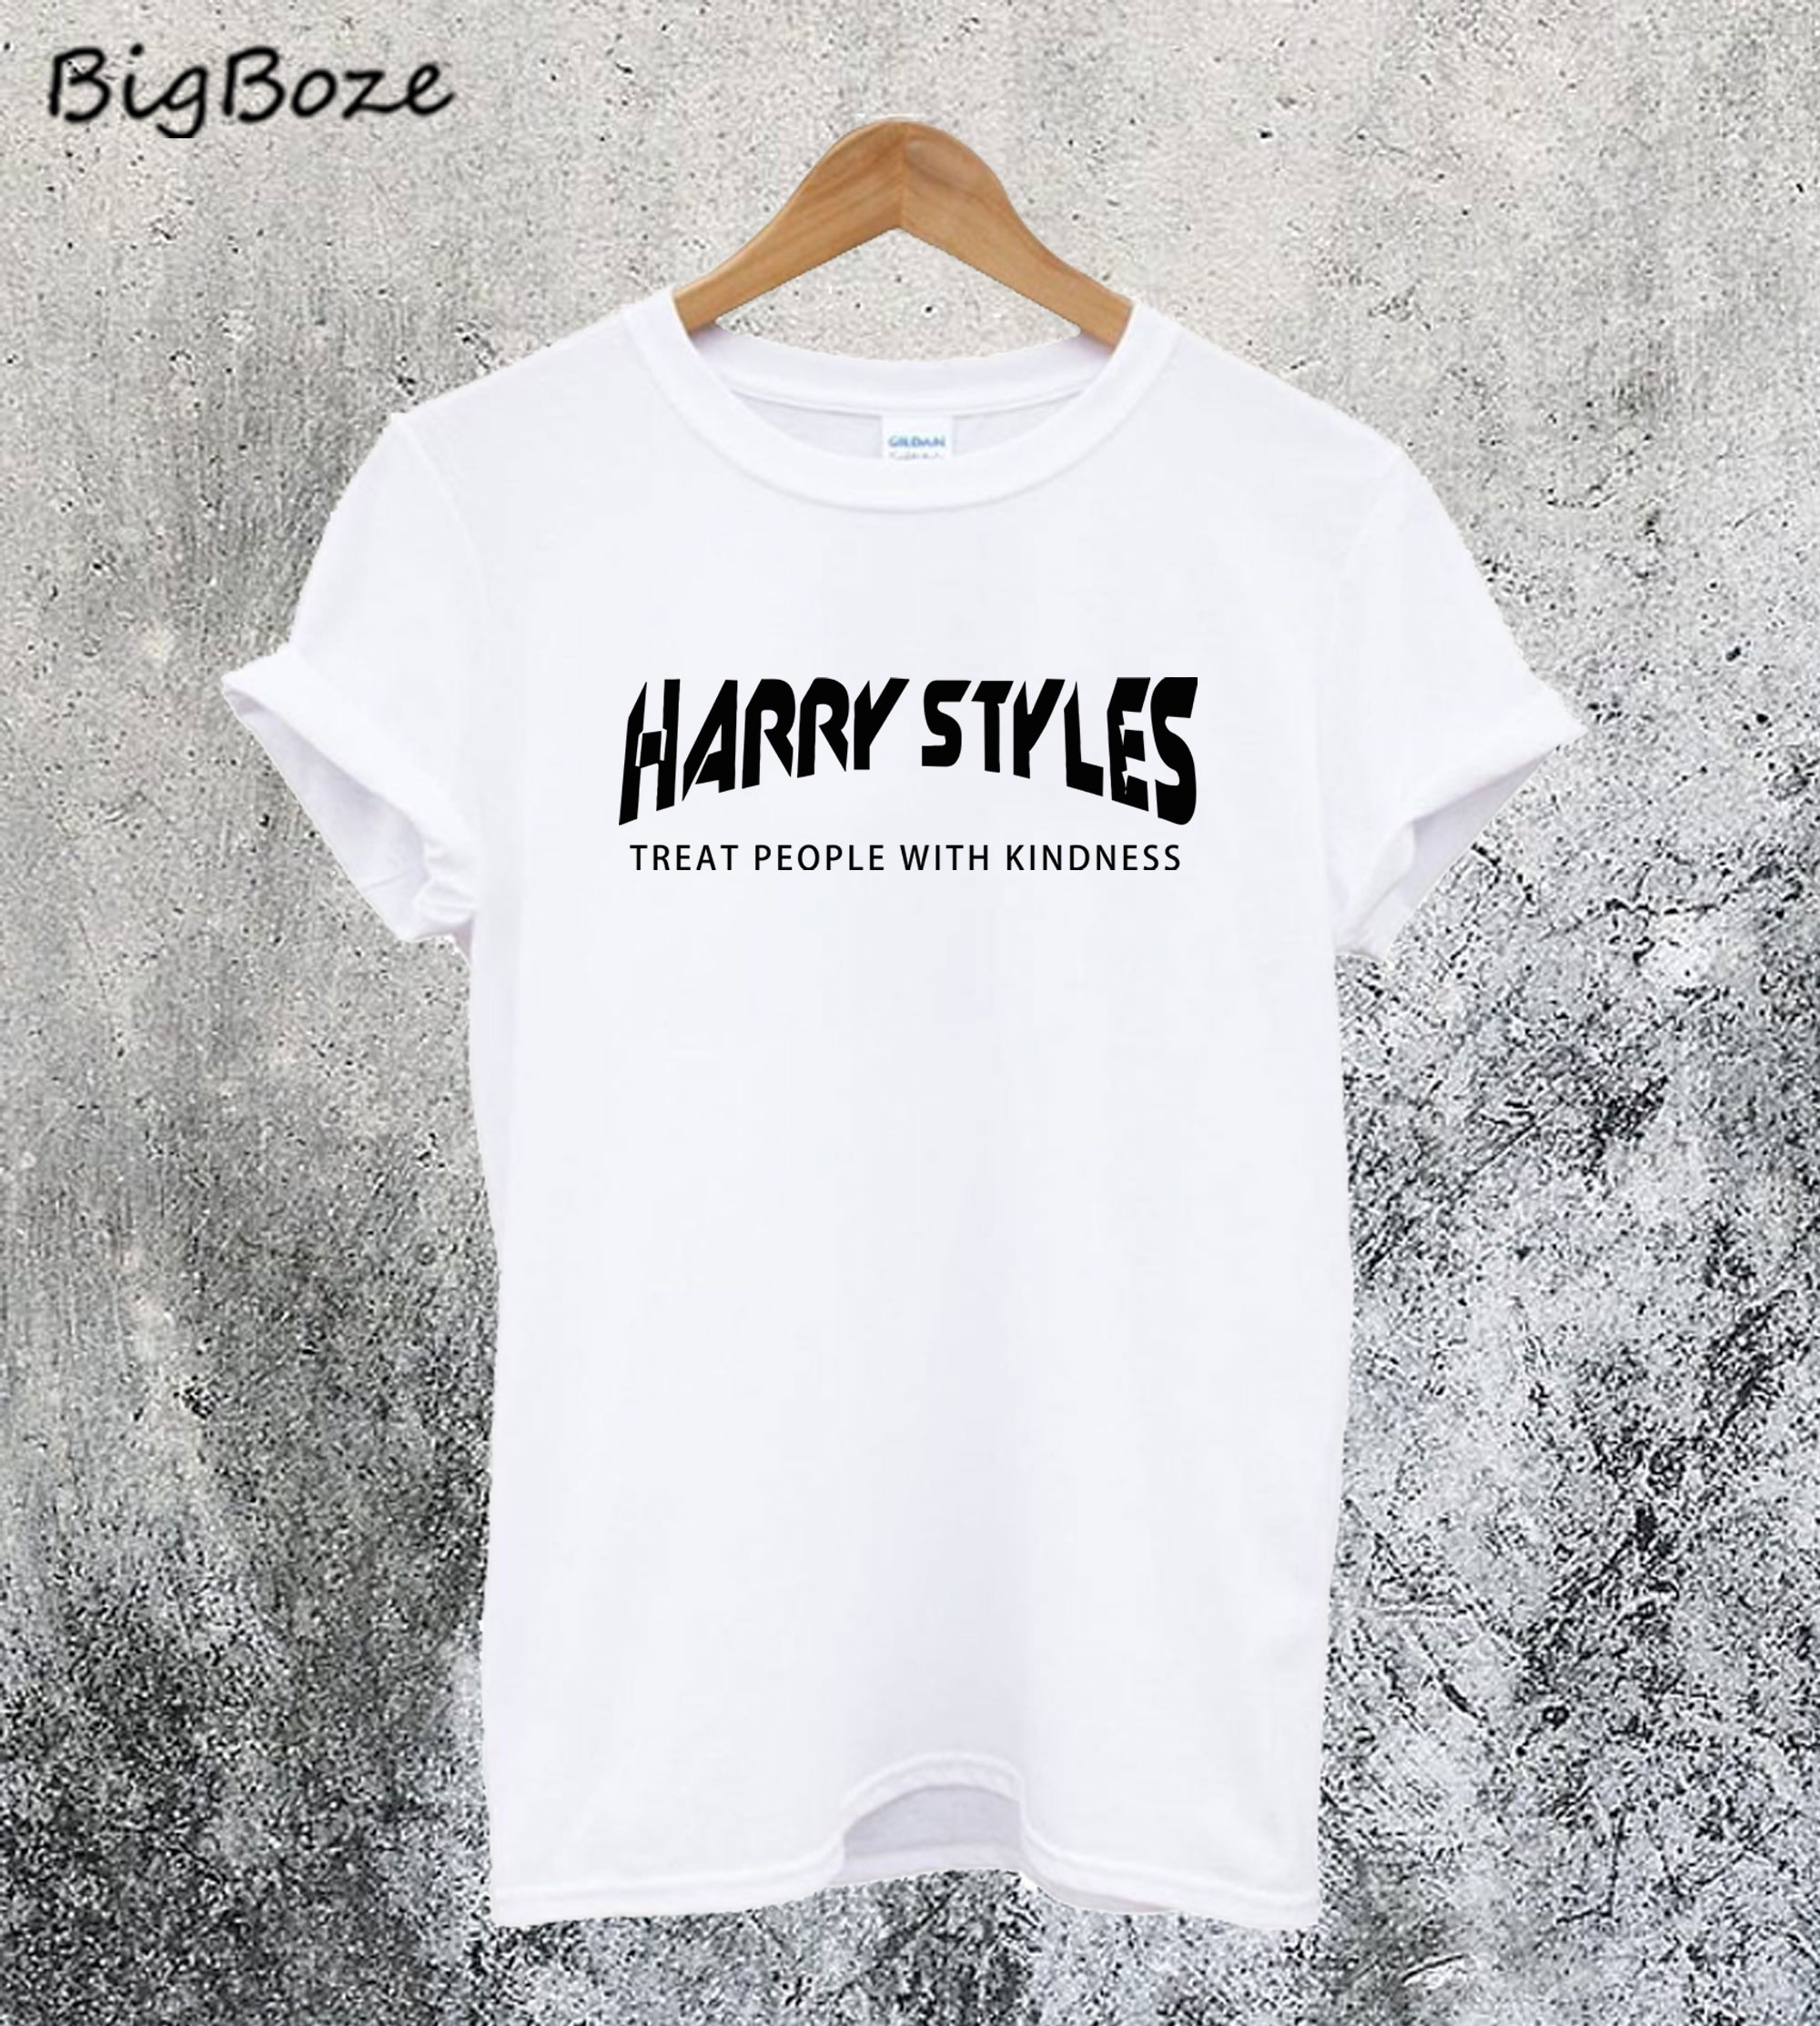 Compre Harry Styles Treat People with Kindness T-Shirt